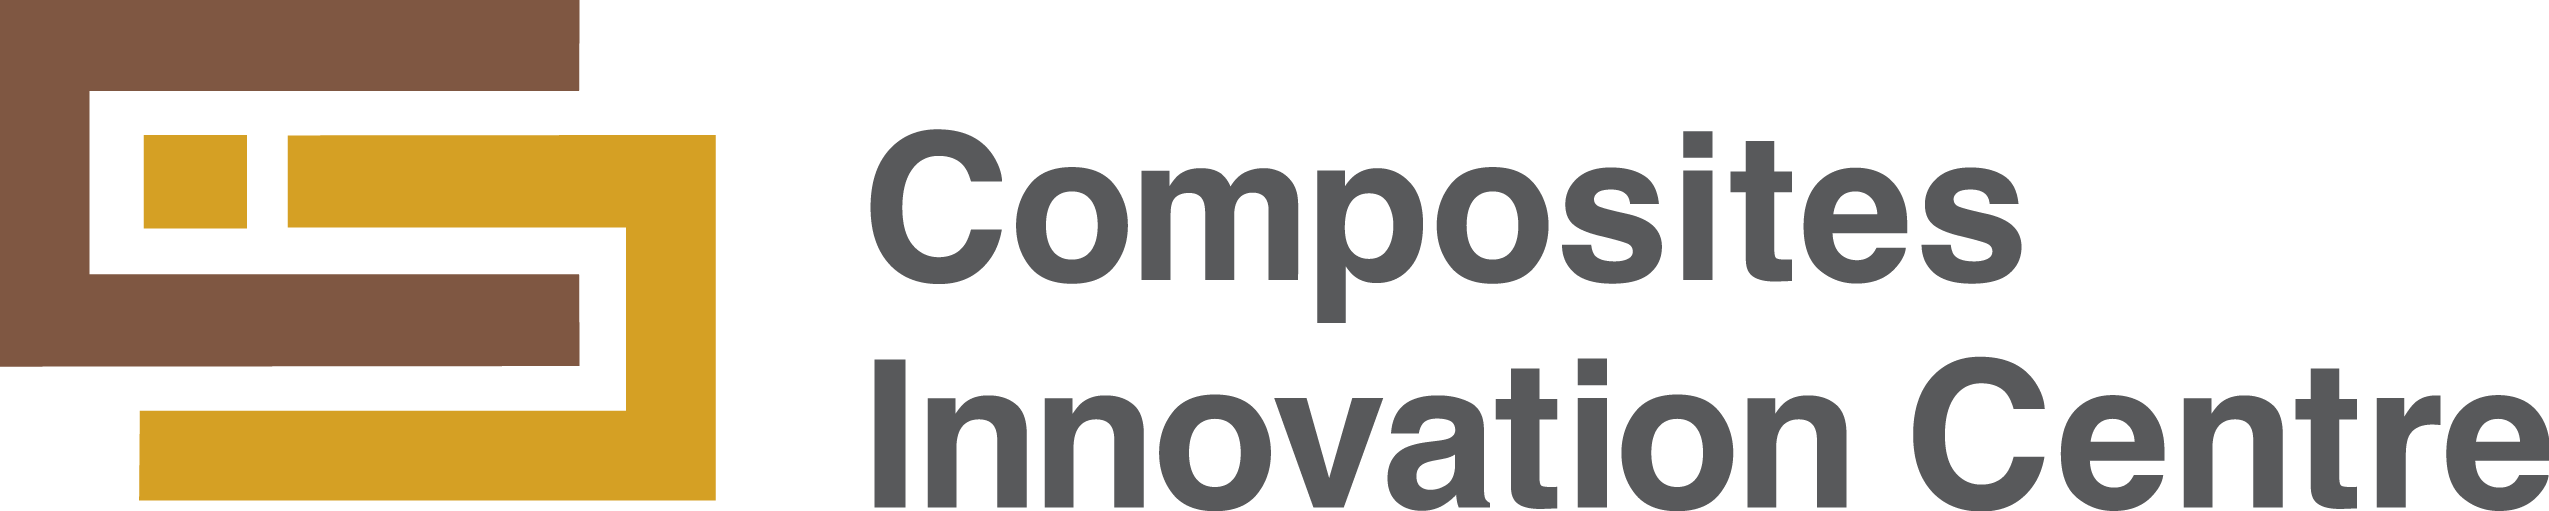 Composites Innovation Centre(Winnipeg, Manitoba)